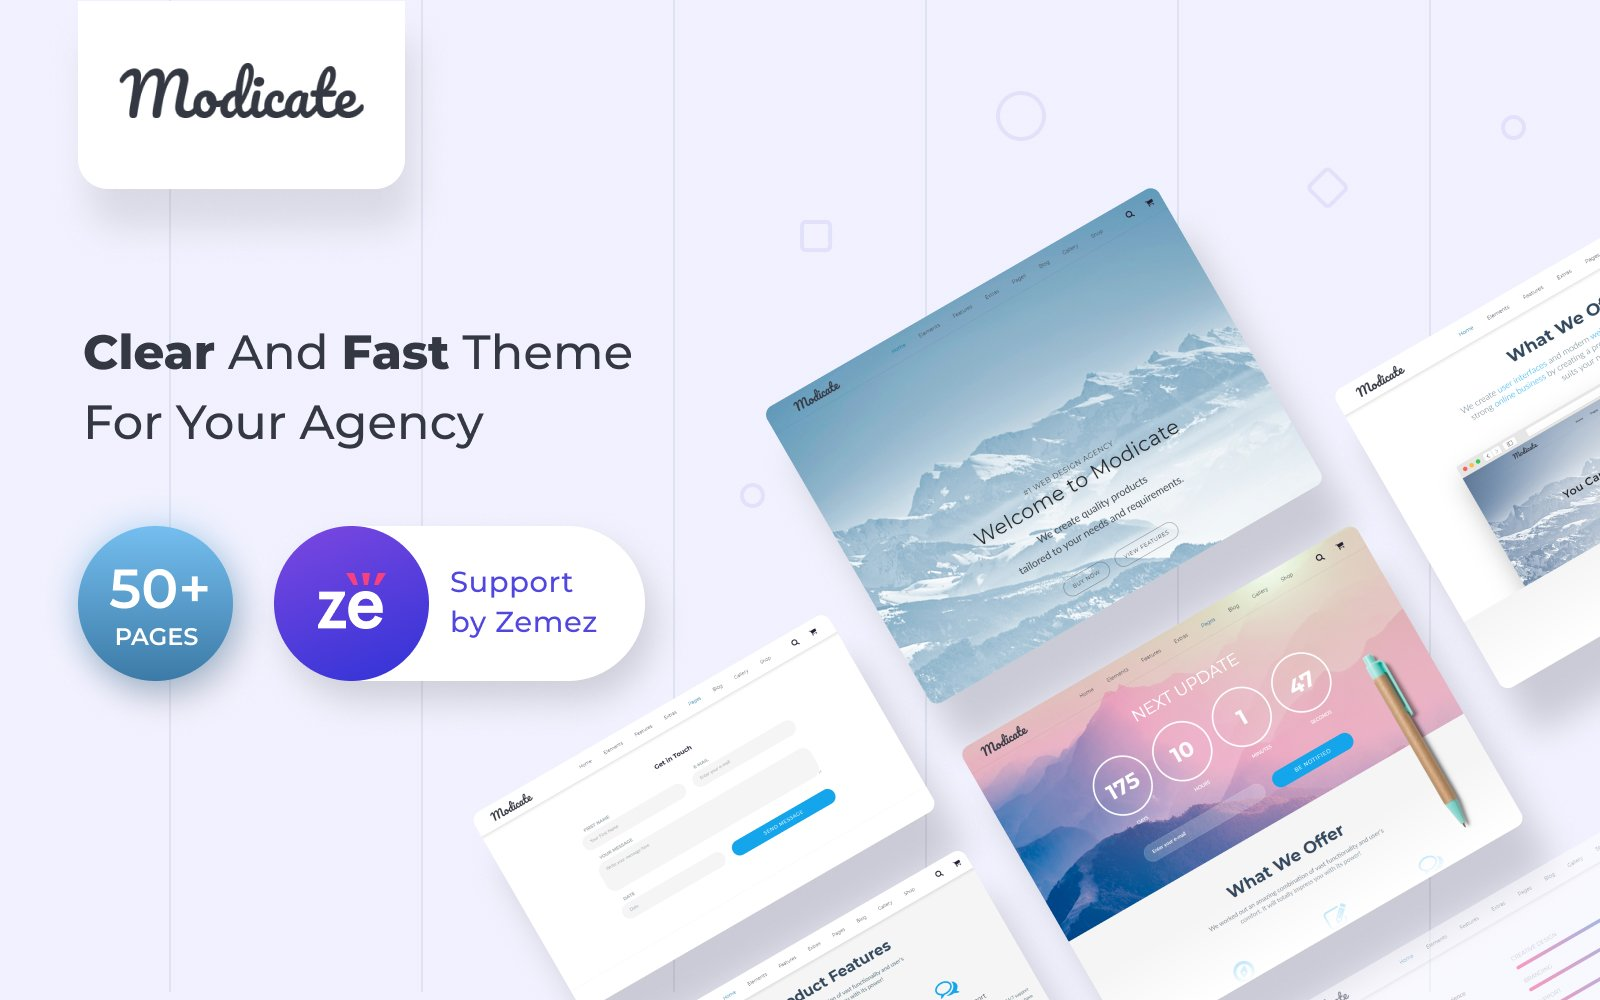 Responsivt Modicate - Web Design Studio Website Template Hemsidemall #58434